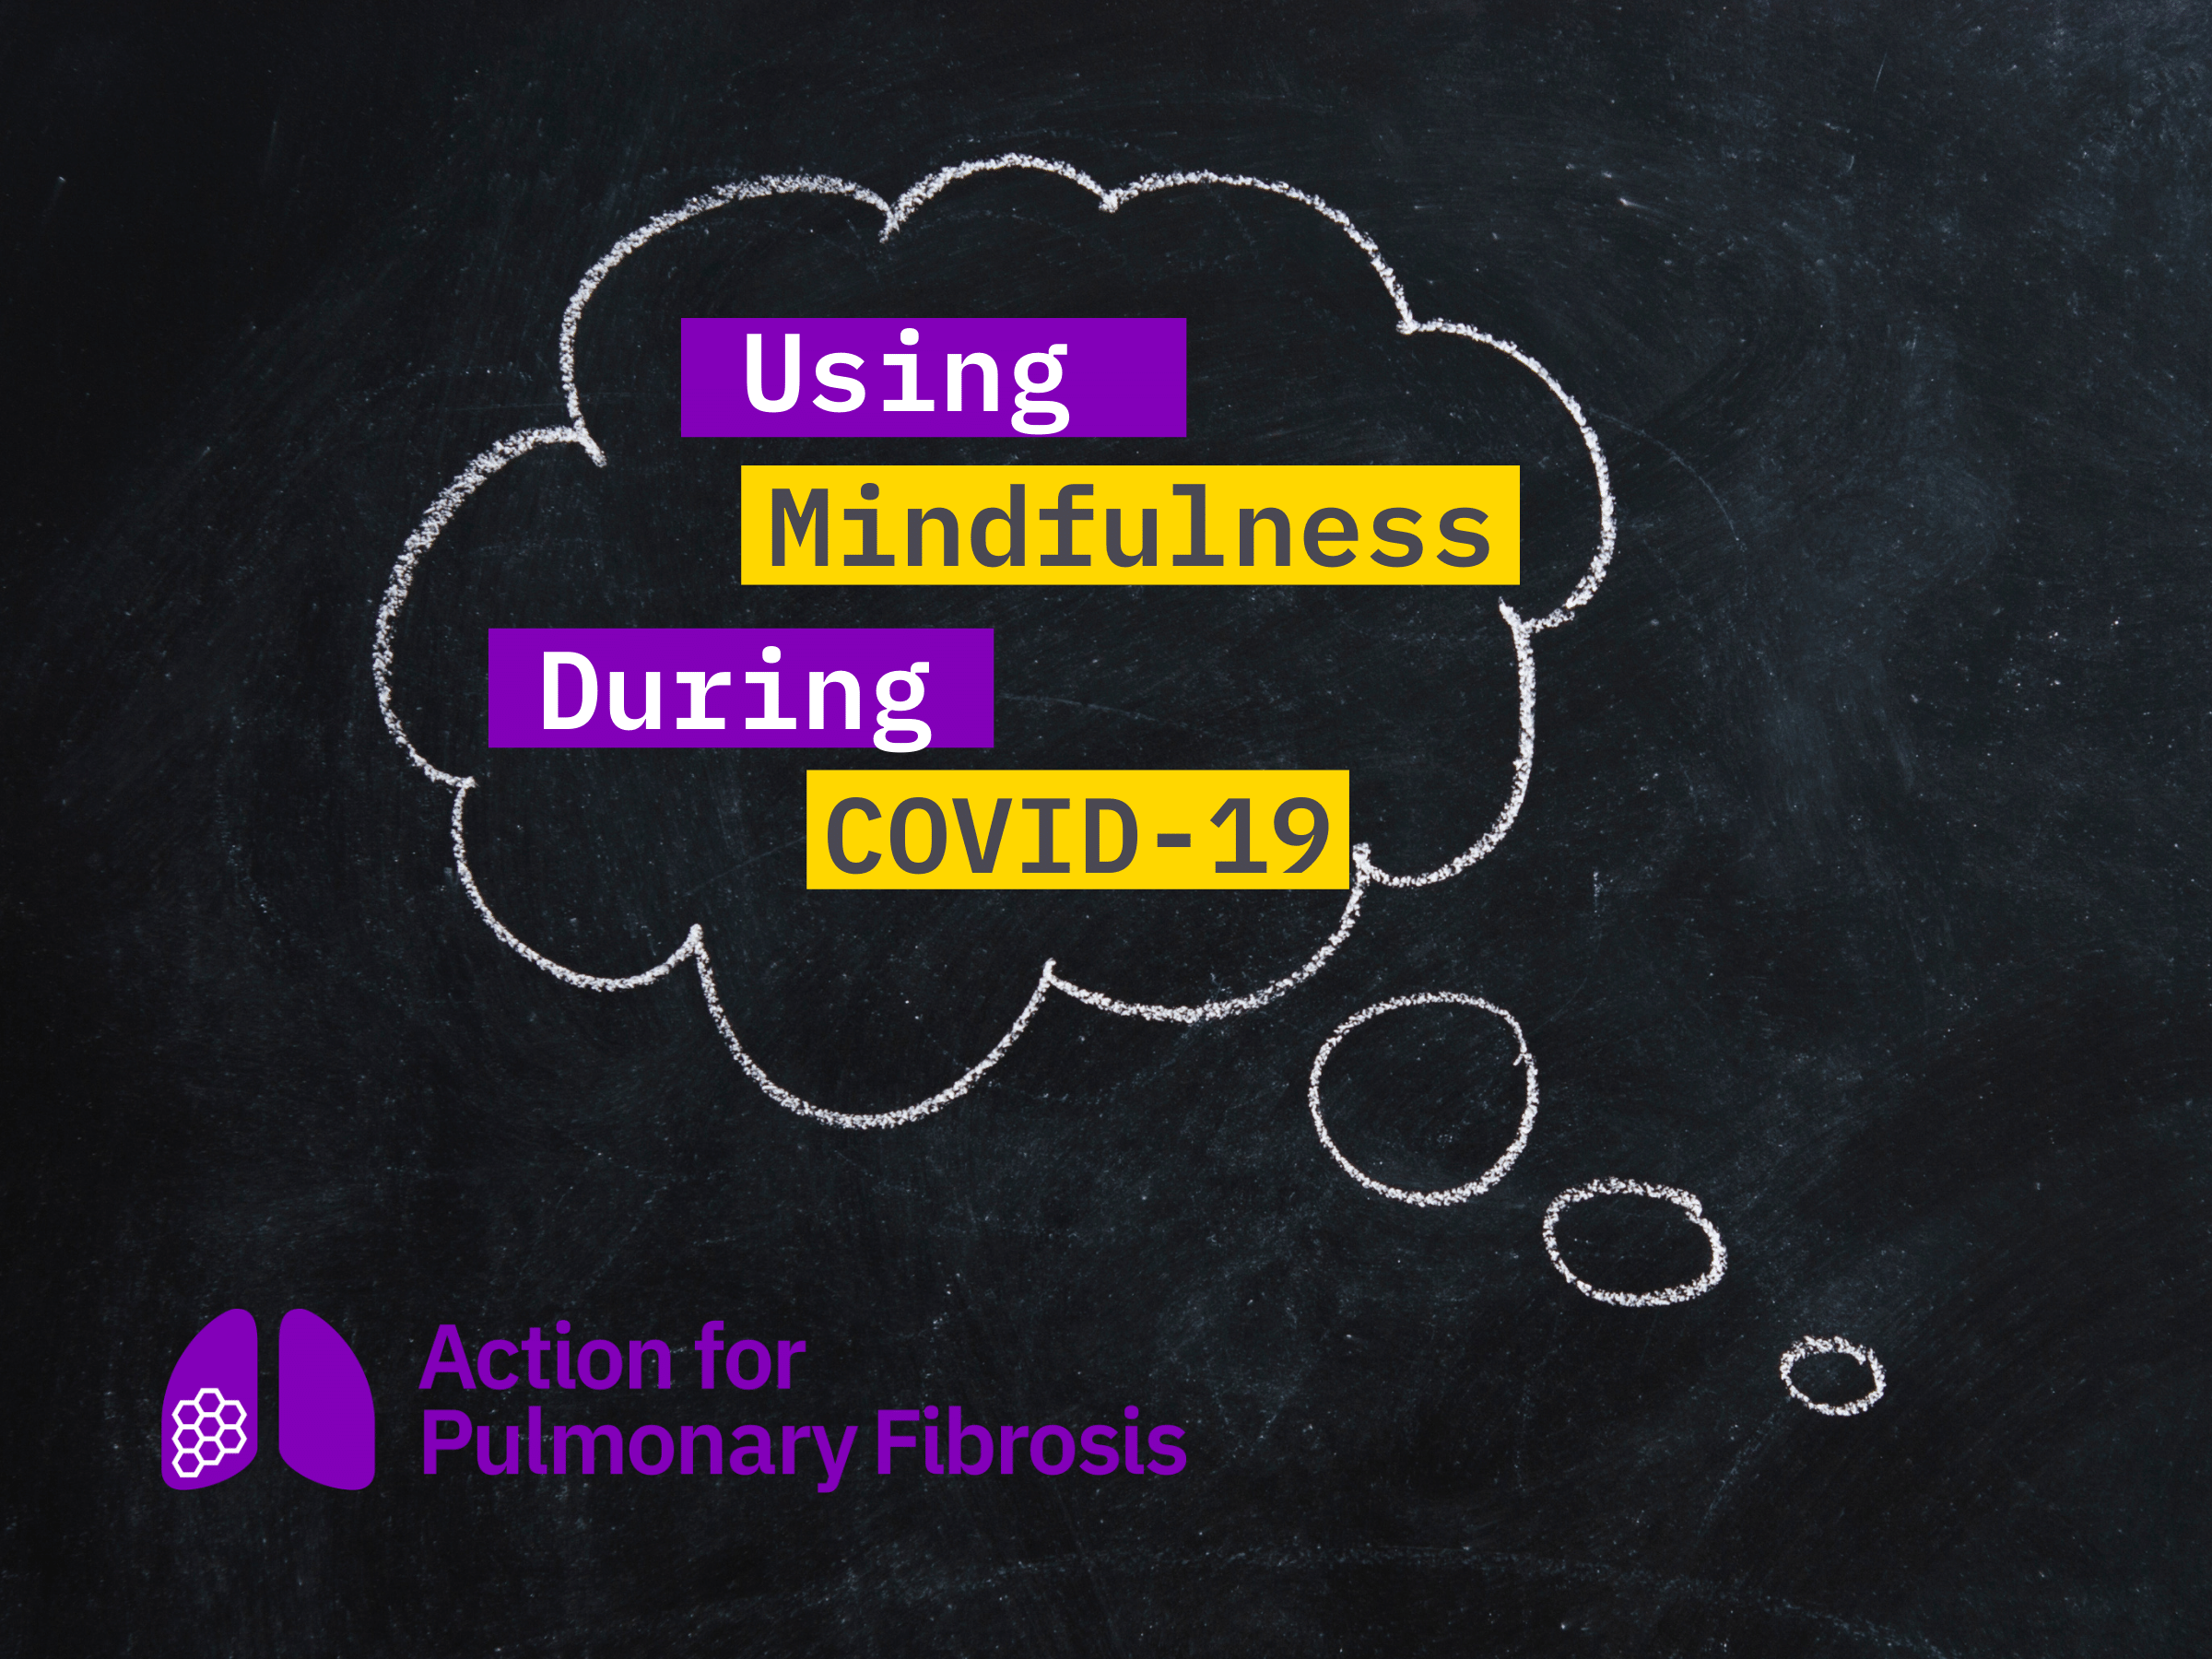 Using Mindfulness During COVID-19